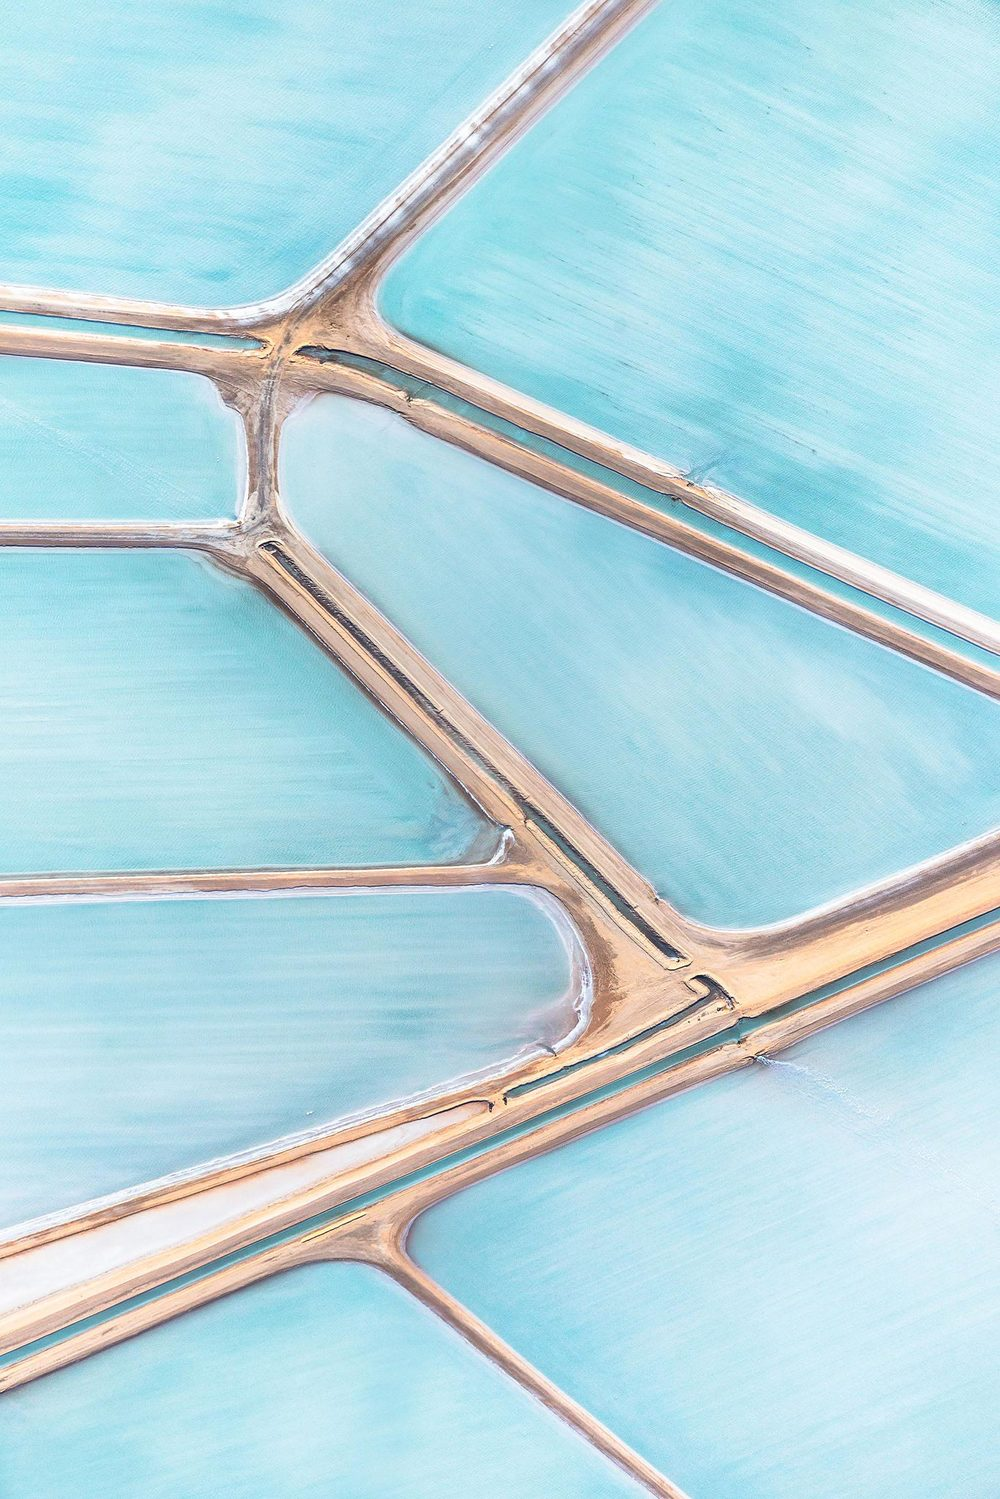 steve-backs-blue-salt-fields-coast-by-coast-1